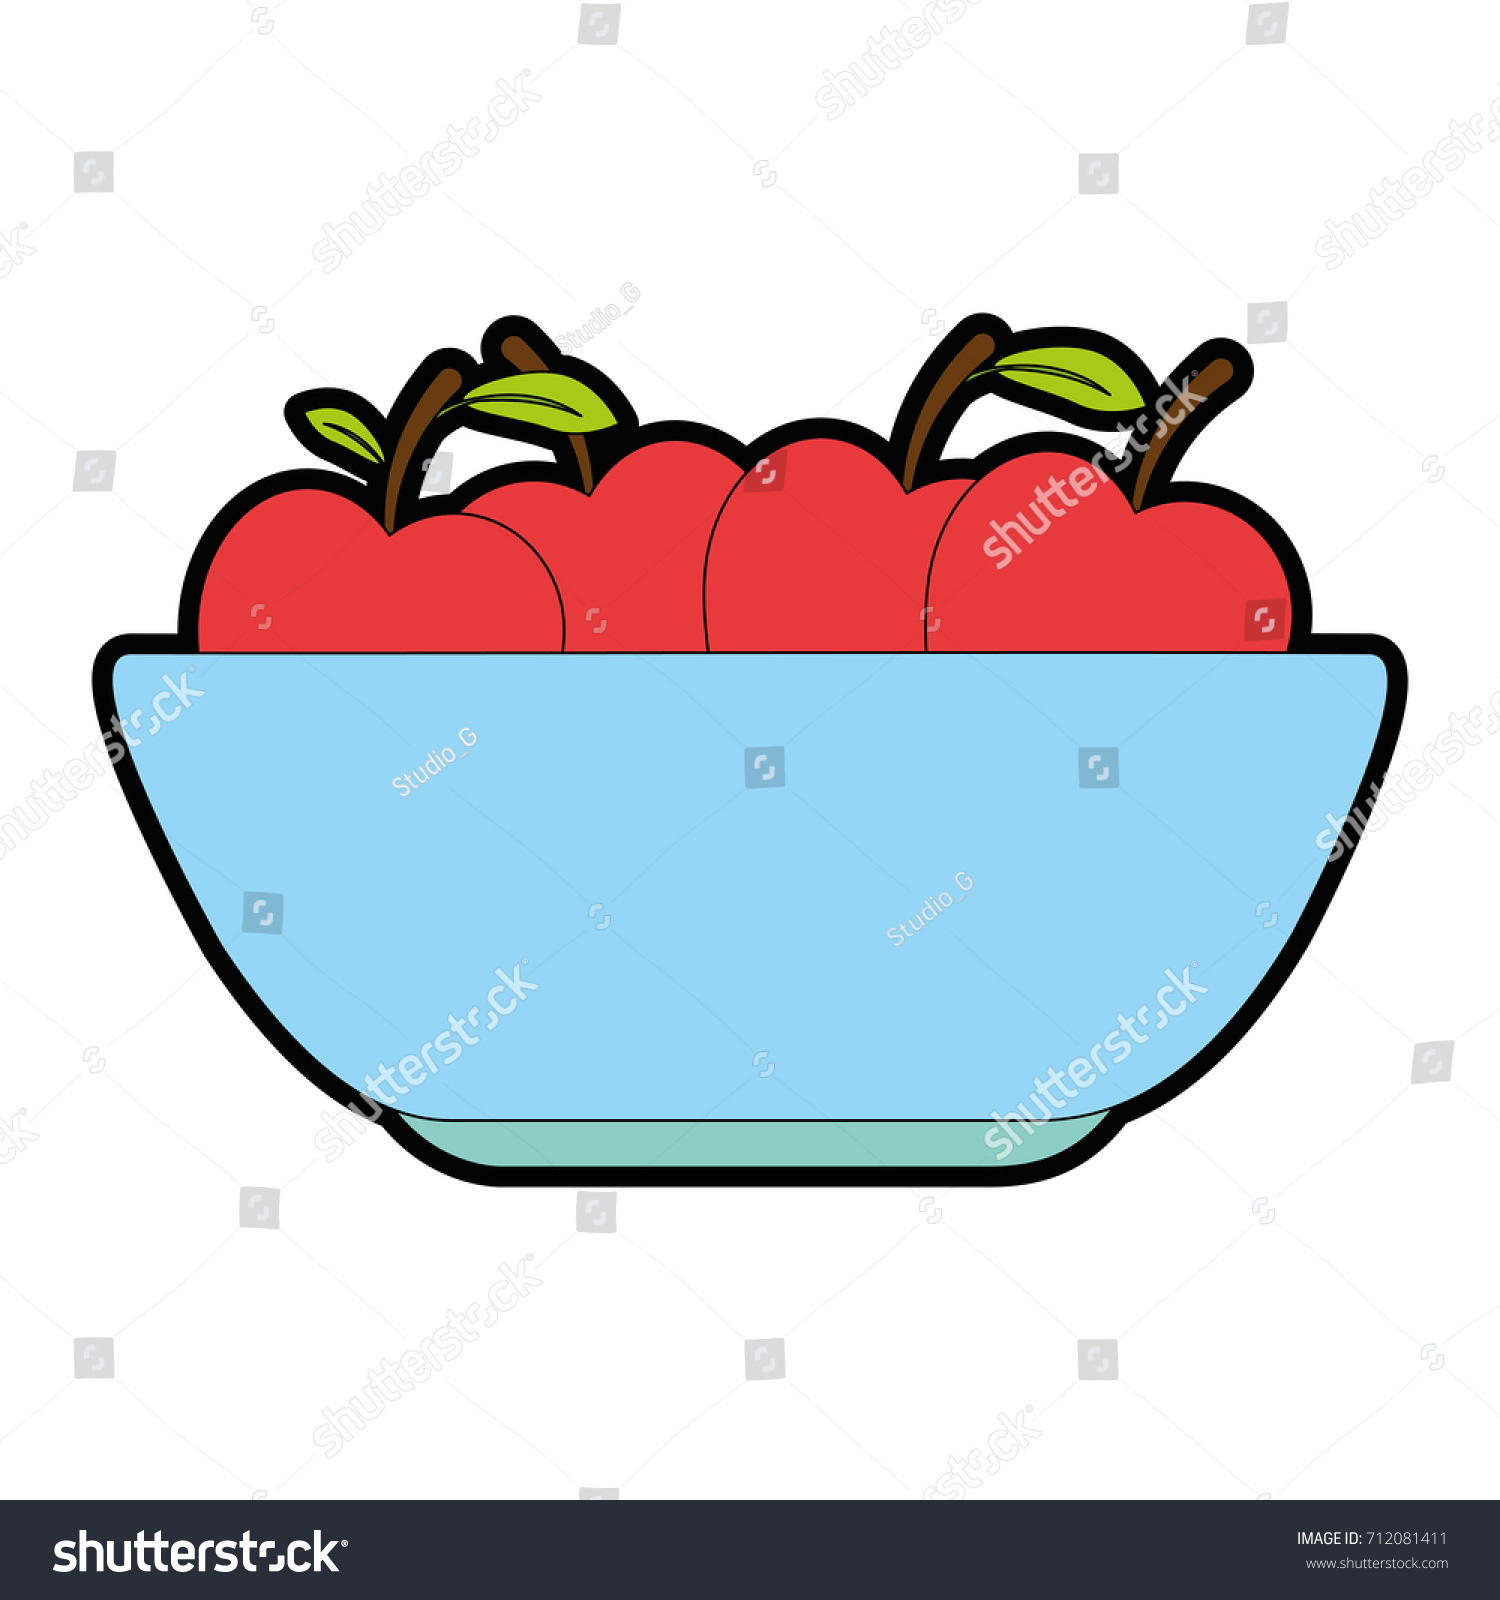 Kitchen Plastic Bowl Apples Stock Vector (Royalty Free) 712081411 ...